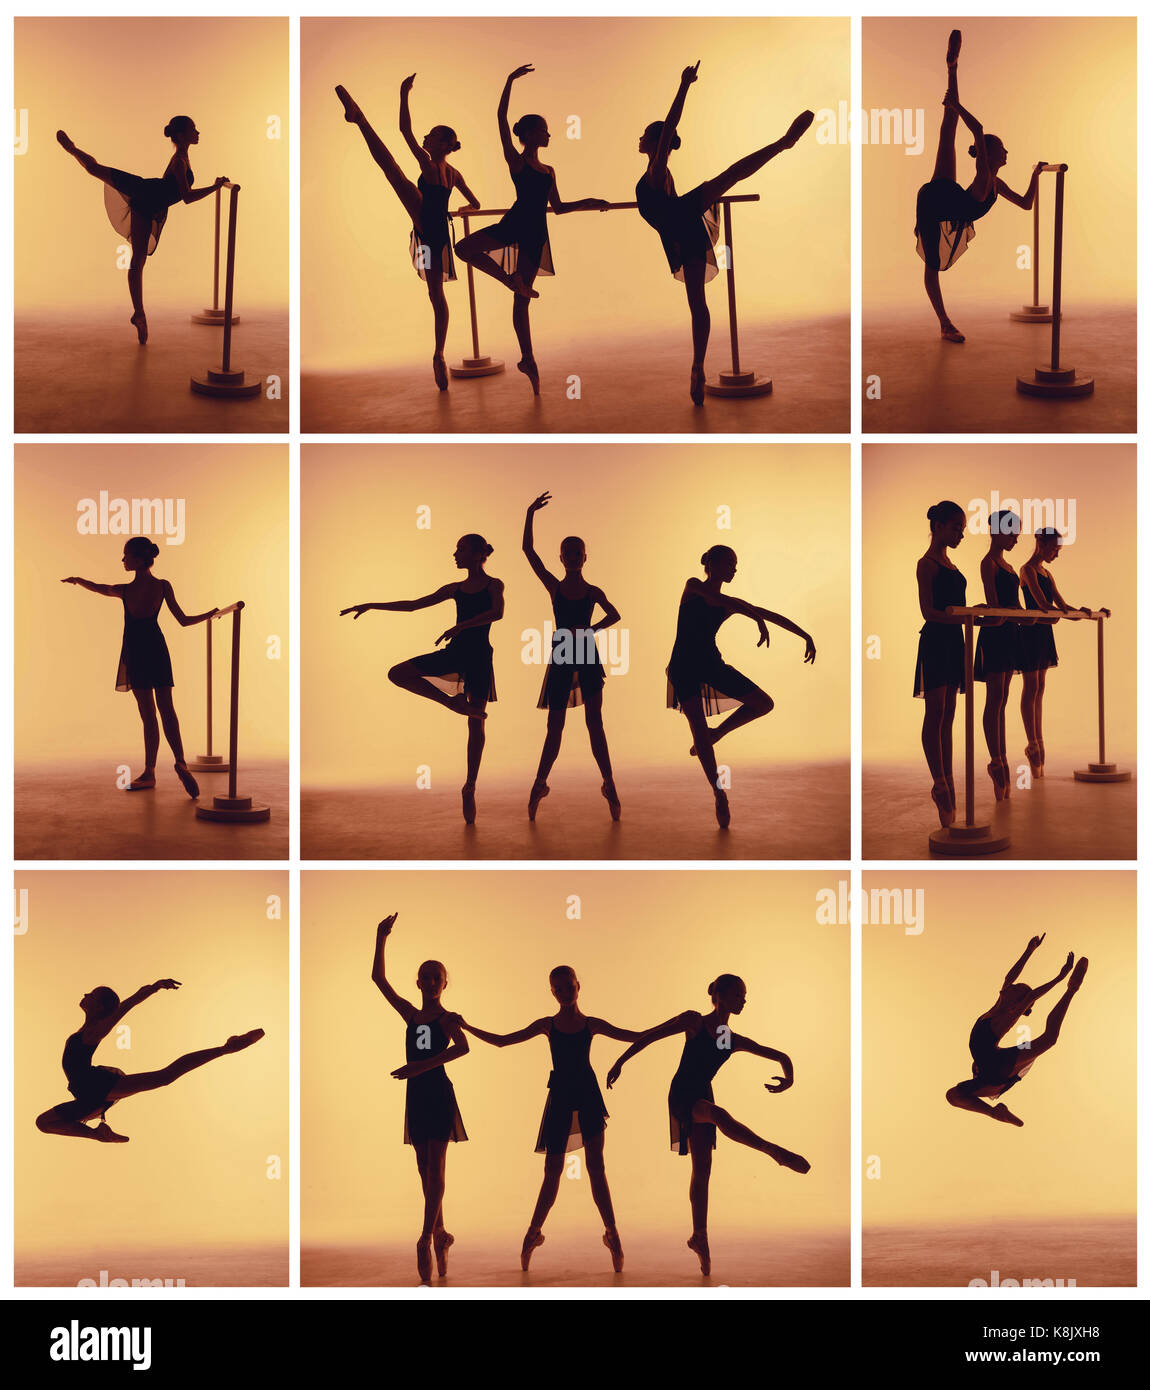 Composition From Silhouettes Of Three Young Dancers In Ballet Poses Stock Photo Alamy